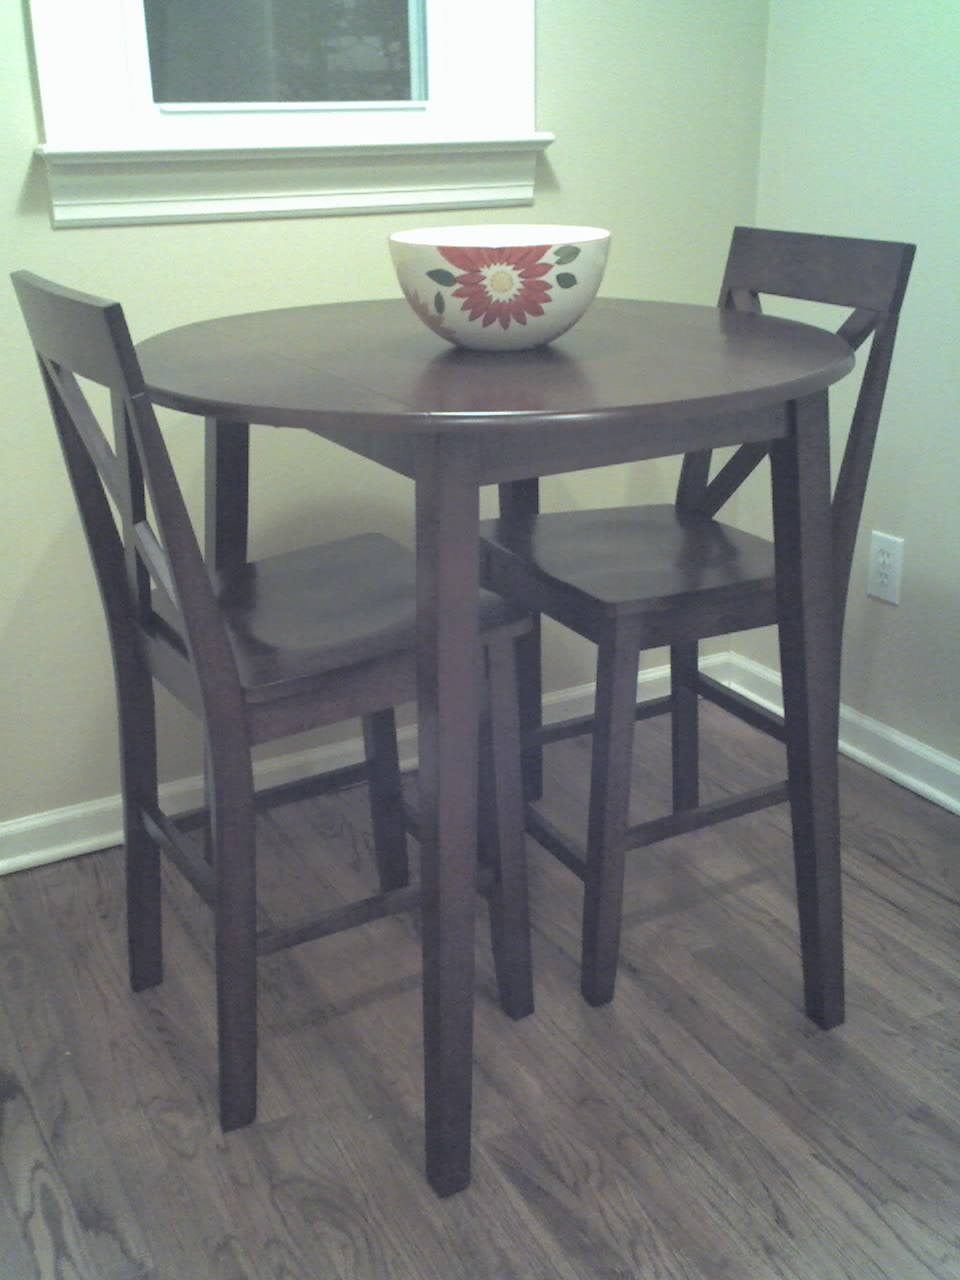 Tall kitchen table with stools - Mahogany in KeepItMovin\'s Garage Sale Glen  Ridge, NJ